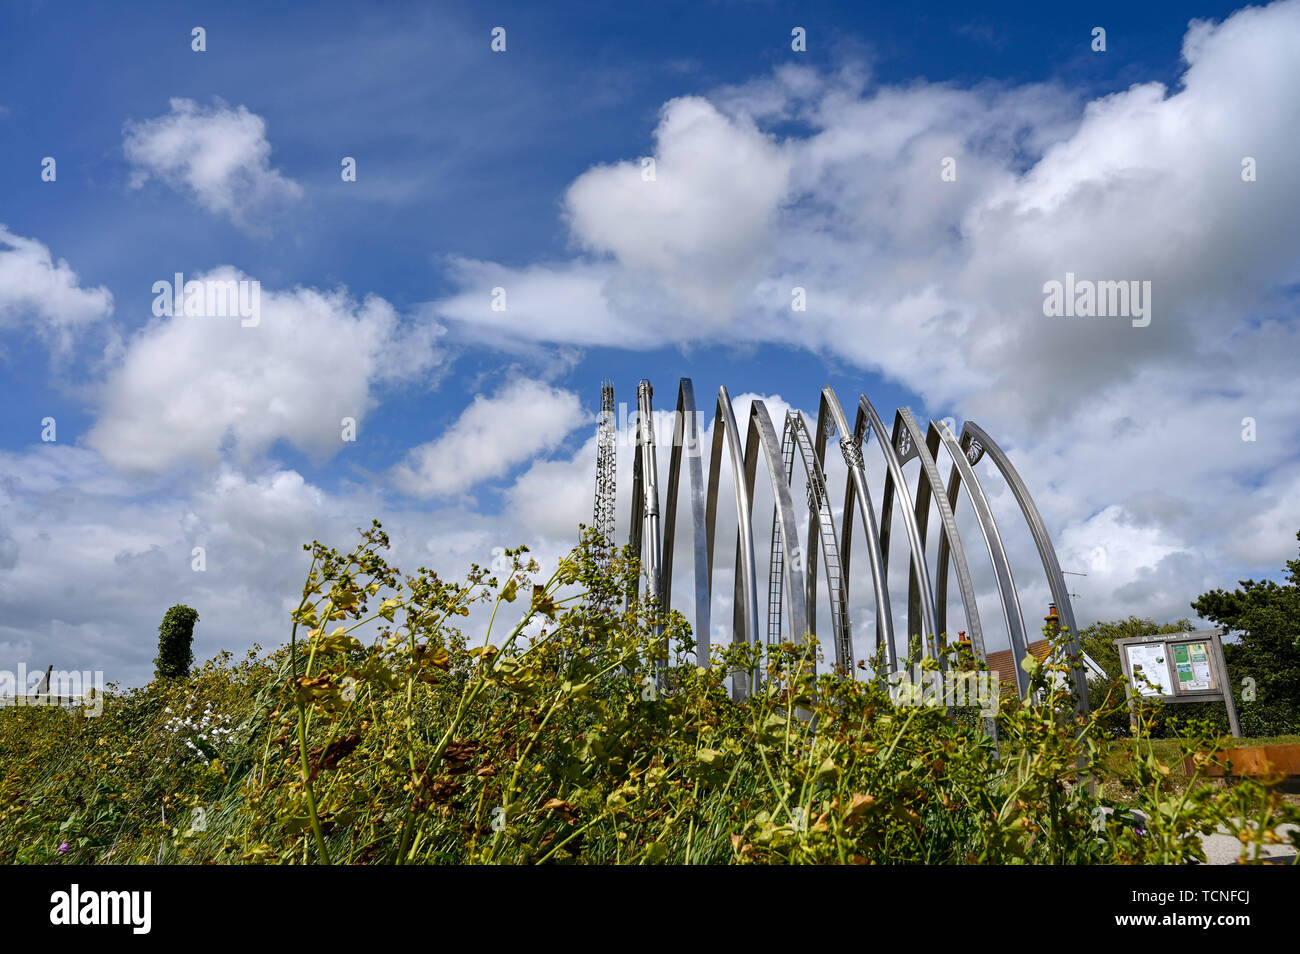 Memorial artwork dedicated to the eleven victims of the Shoreham Airshow disaster by Sussex artists Jane Fordham and David Parfitt UK - Stock Image